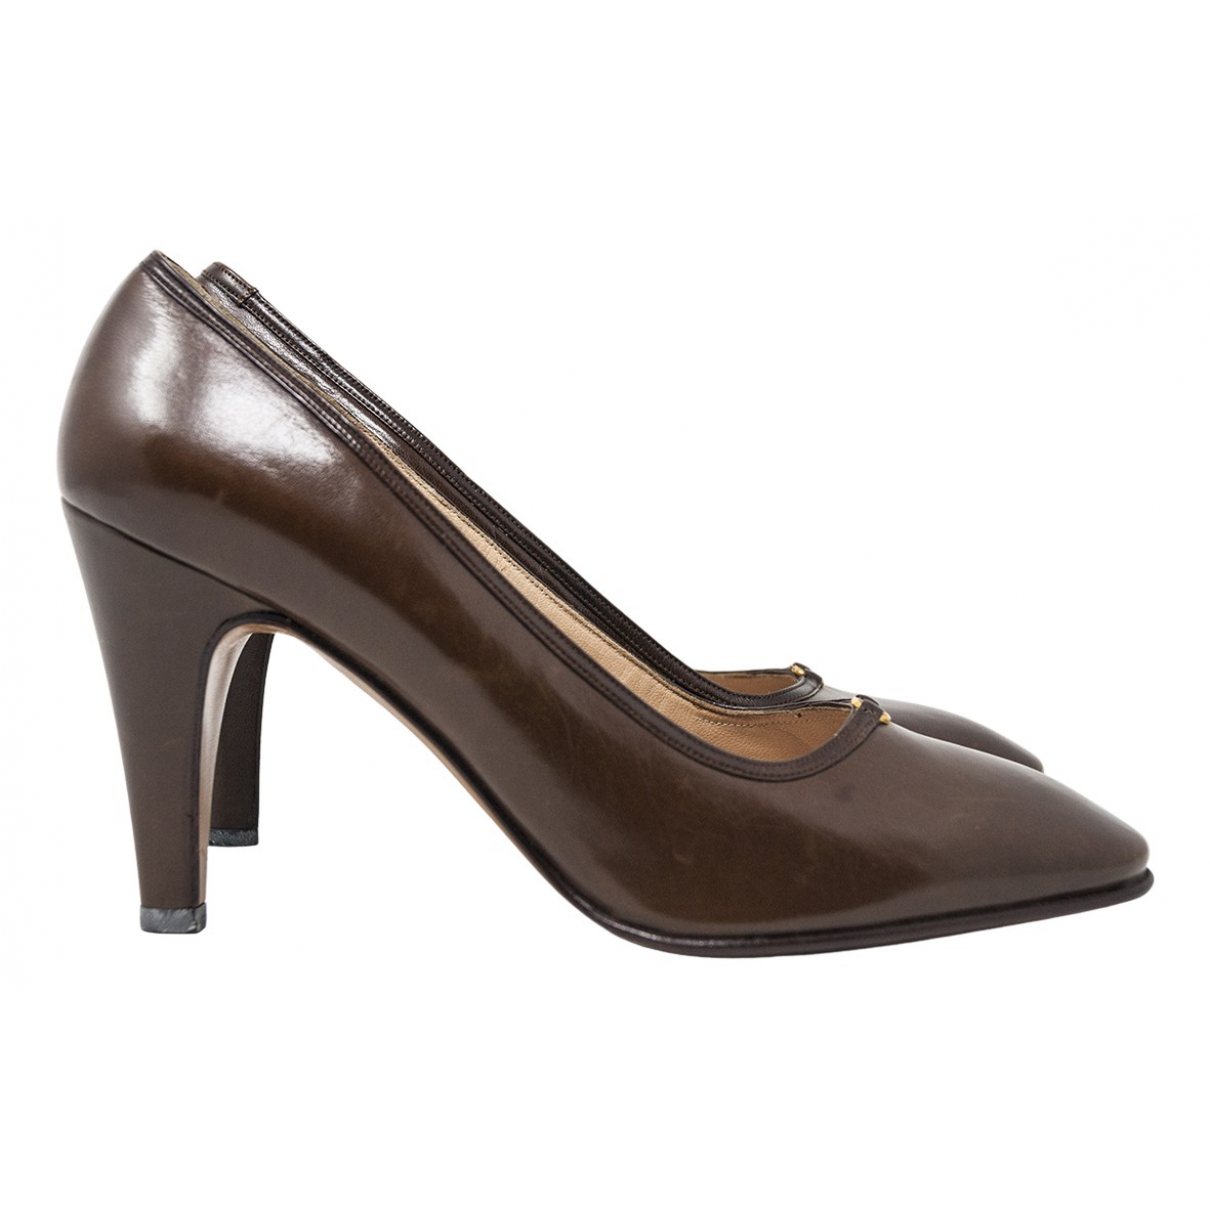 Gucci N Brown Leather Heels for Women 38 IT